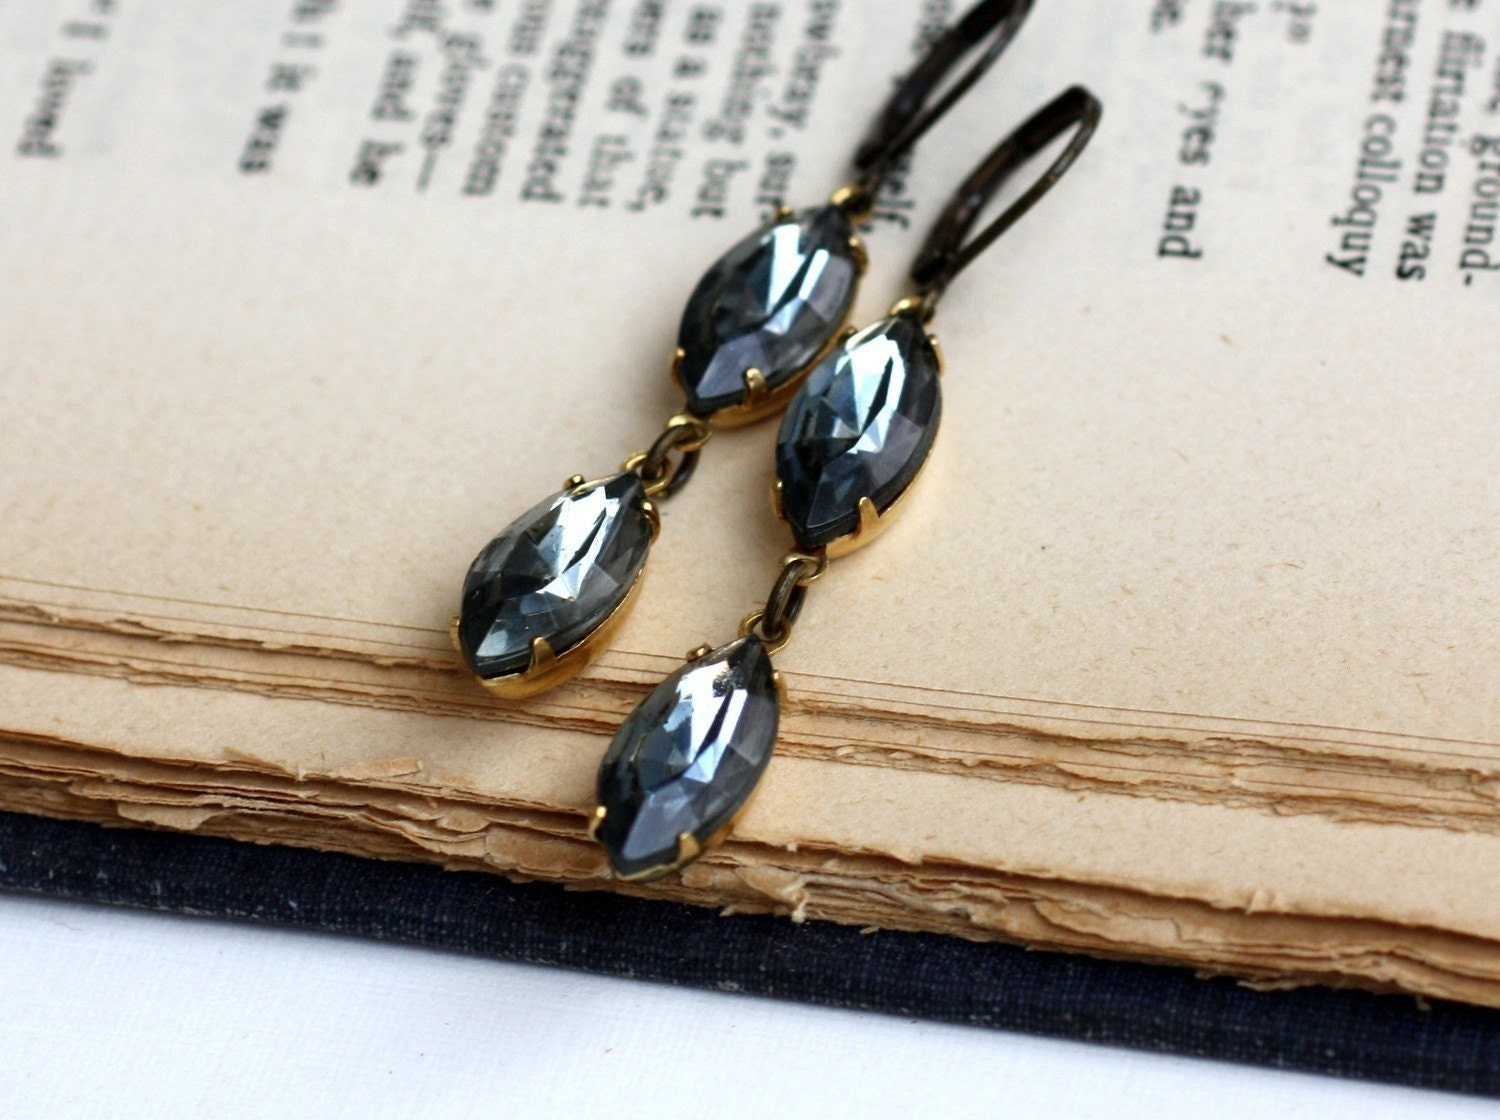 Smoky Marquise. Vintage Black Diamond Earrings - ships on 6/19